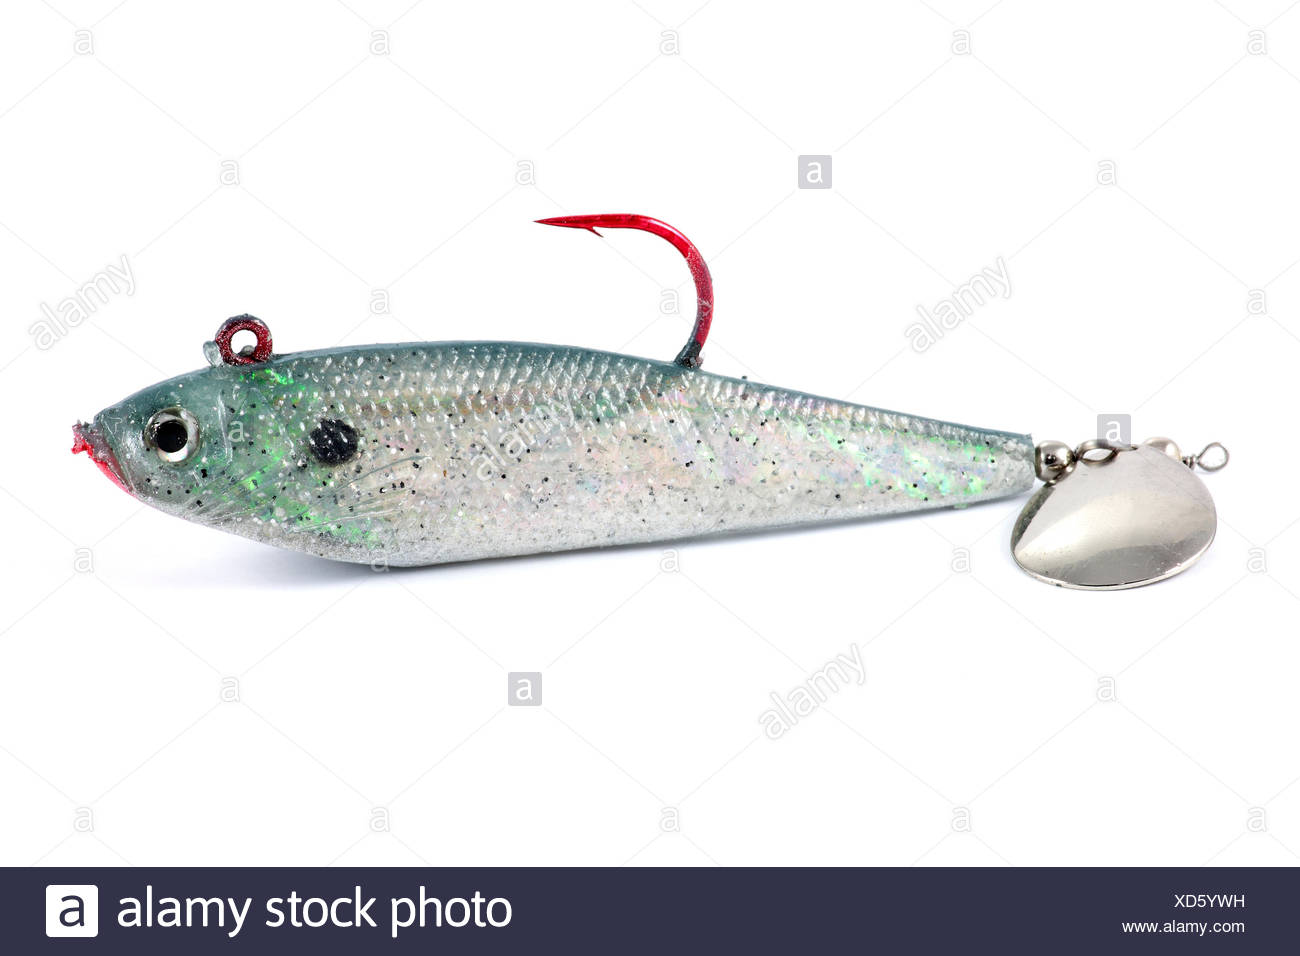 isolated, fish, silver, outdoor, adventure, fishing, predator, trout, bait, - Stock Image